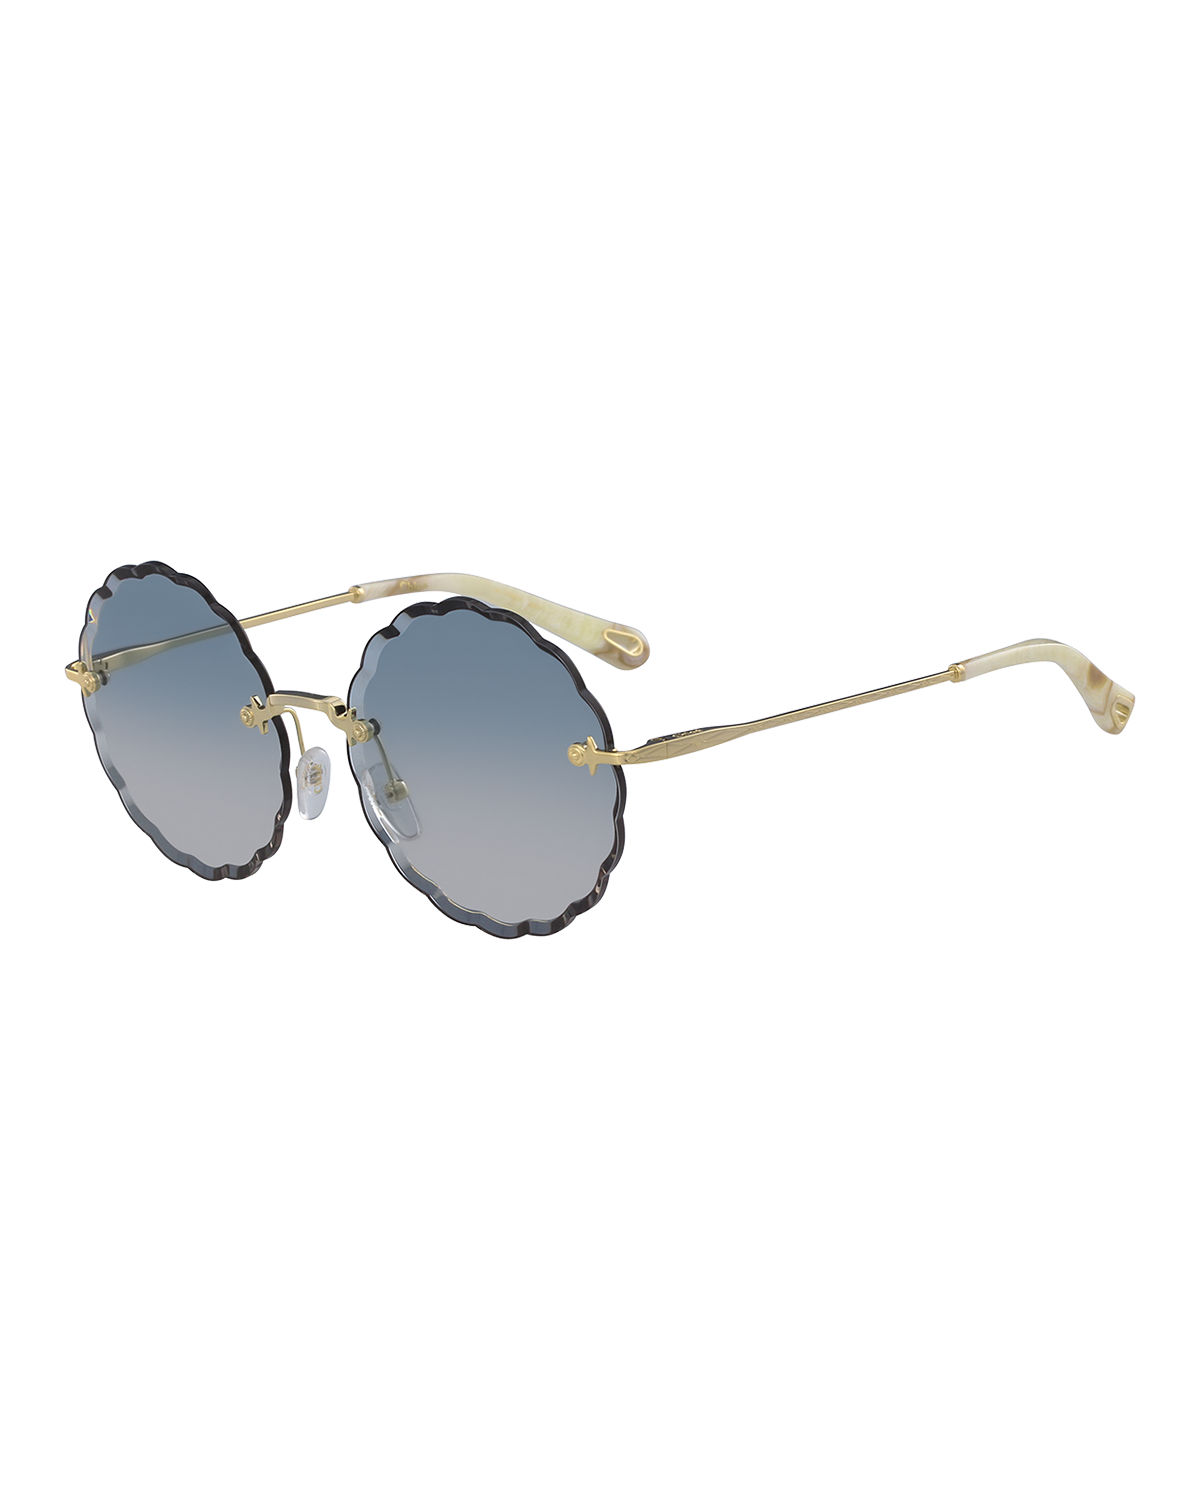 bed83a454349 Chloe Rosie Rimless Scalloped Sunglasses